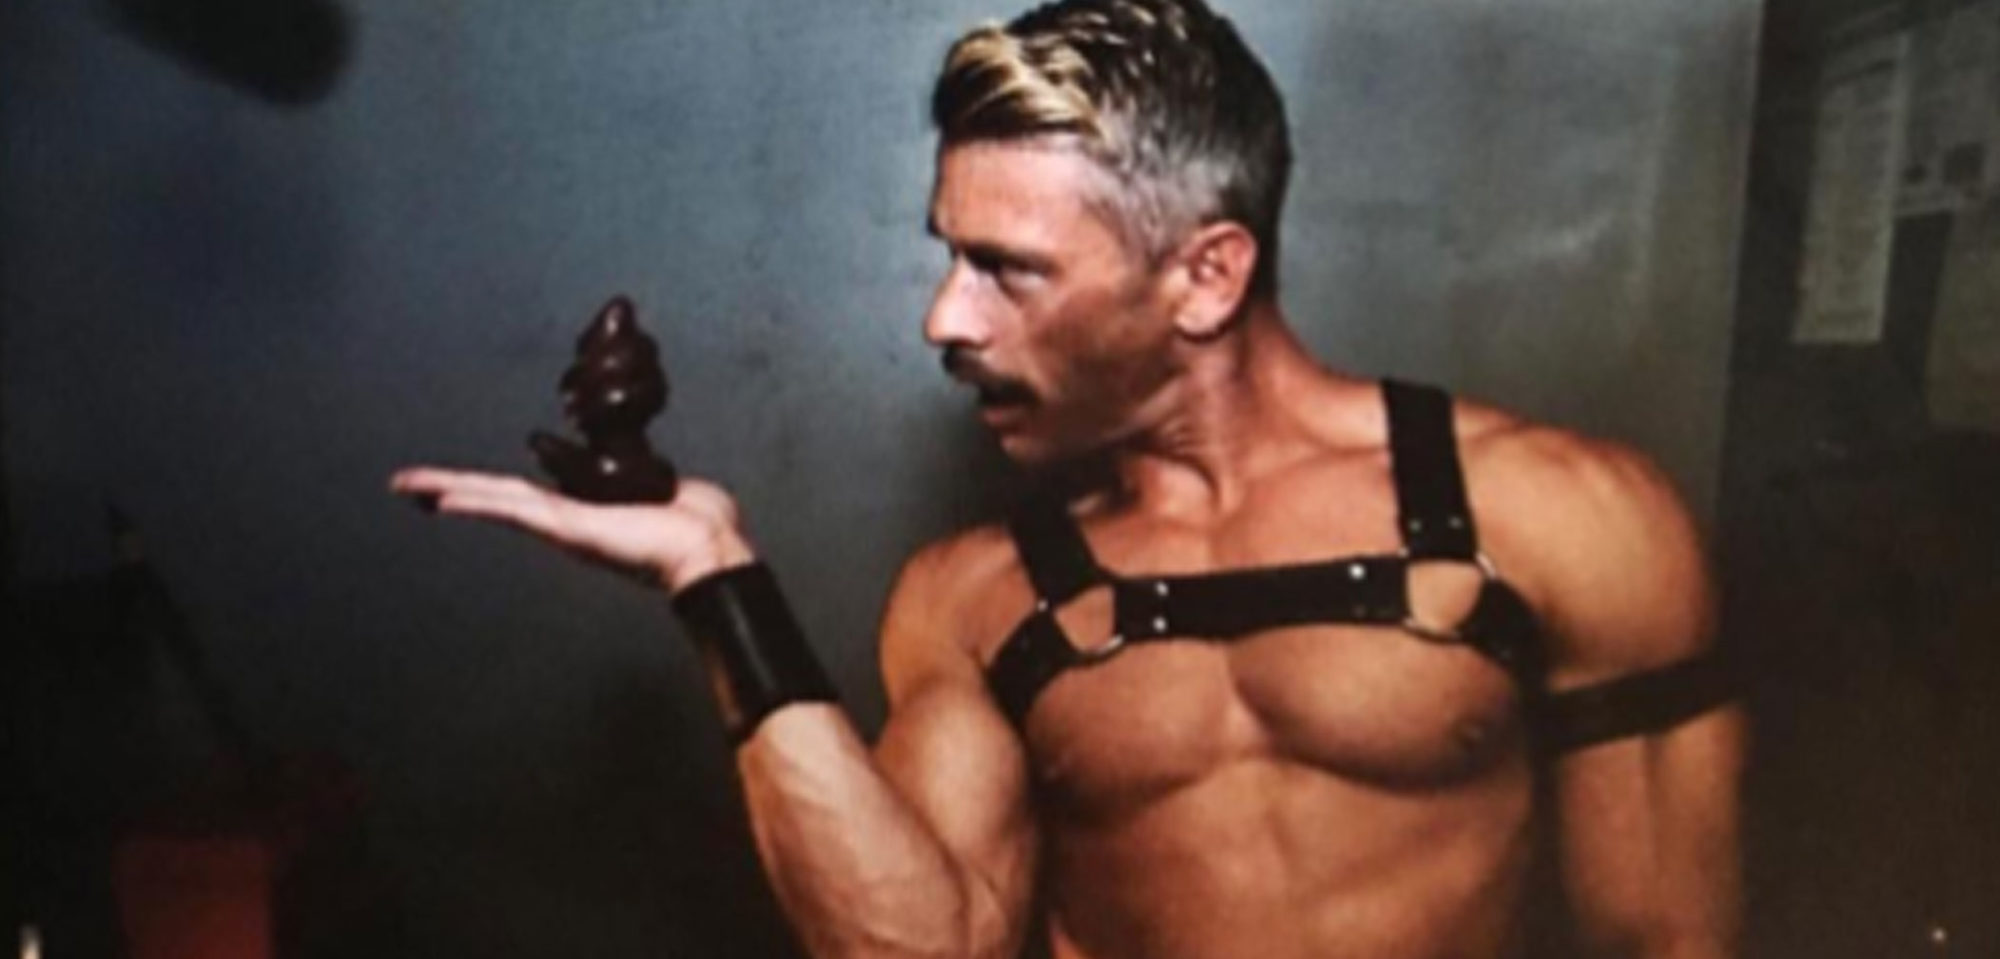 Terry Miller Tom of Finland 01